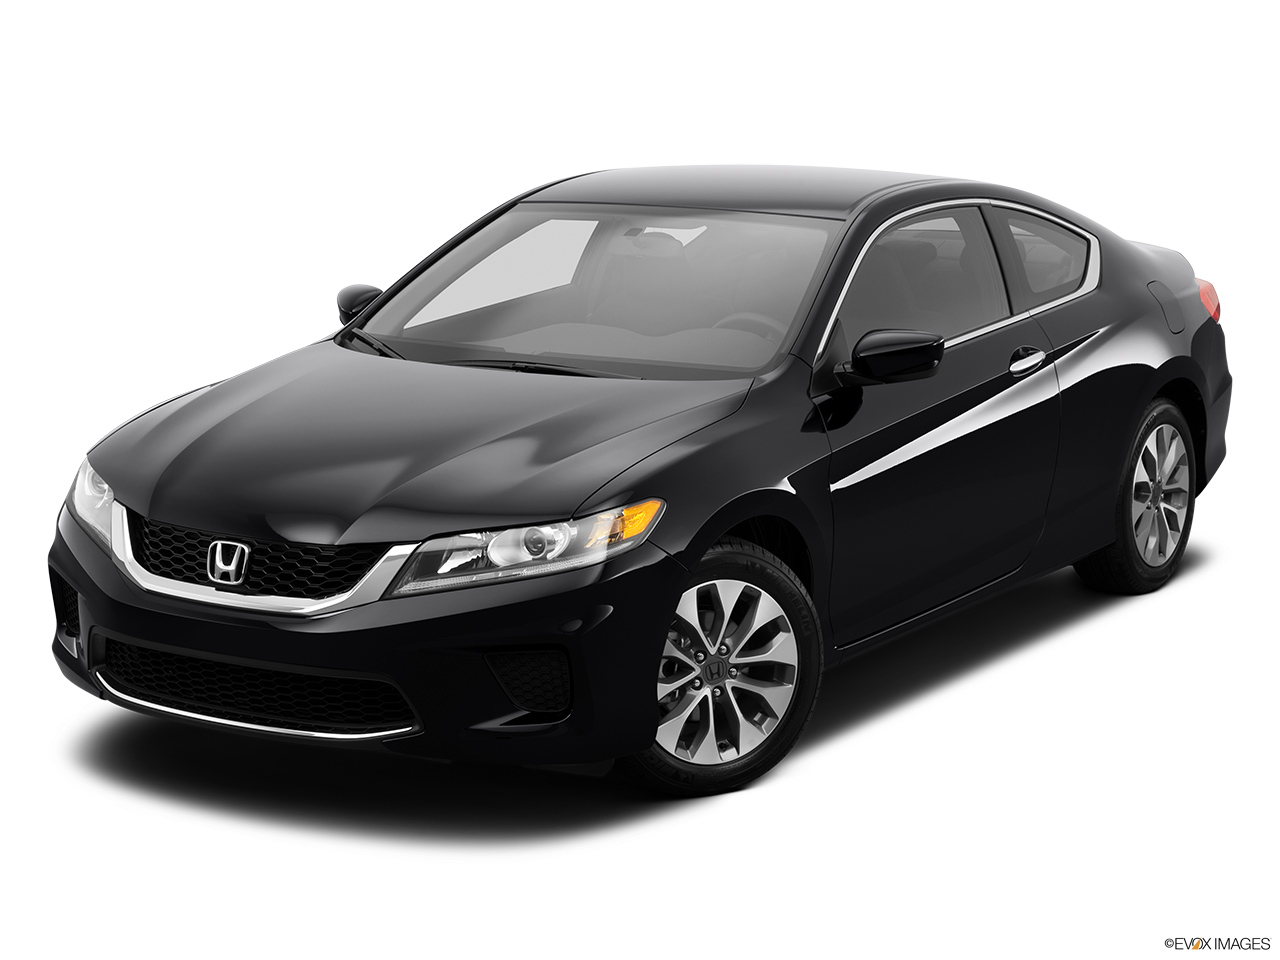 2014 honda accord 2 door images galleries with a bite. Black Bedroom Furniture Sets. Home Design Ideas